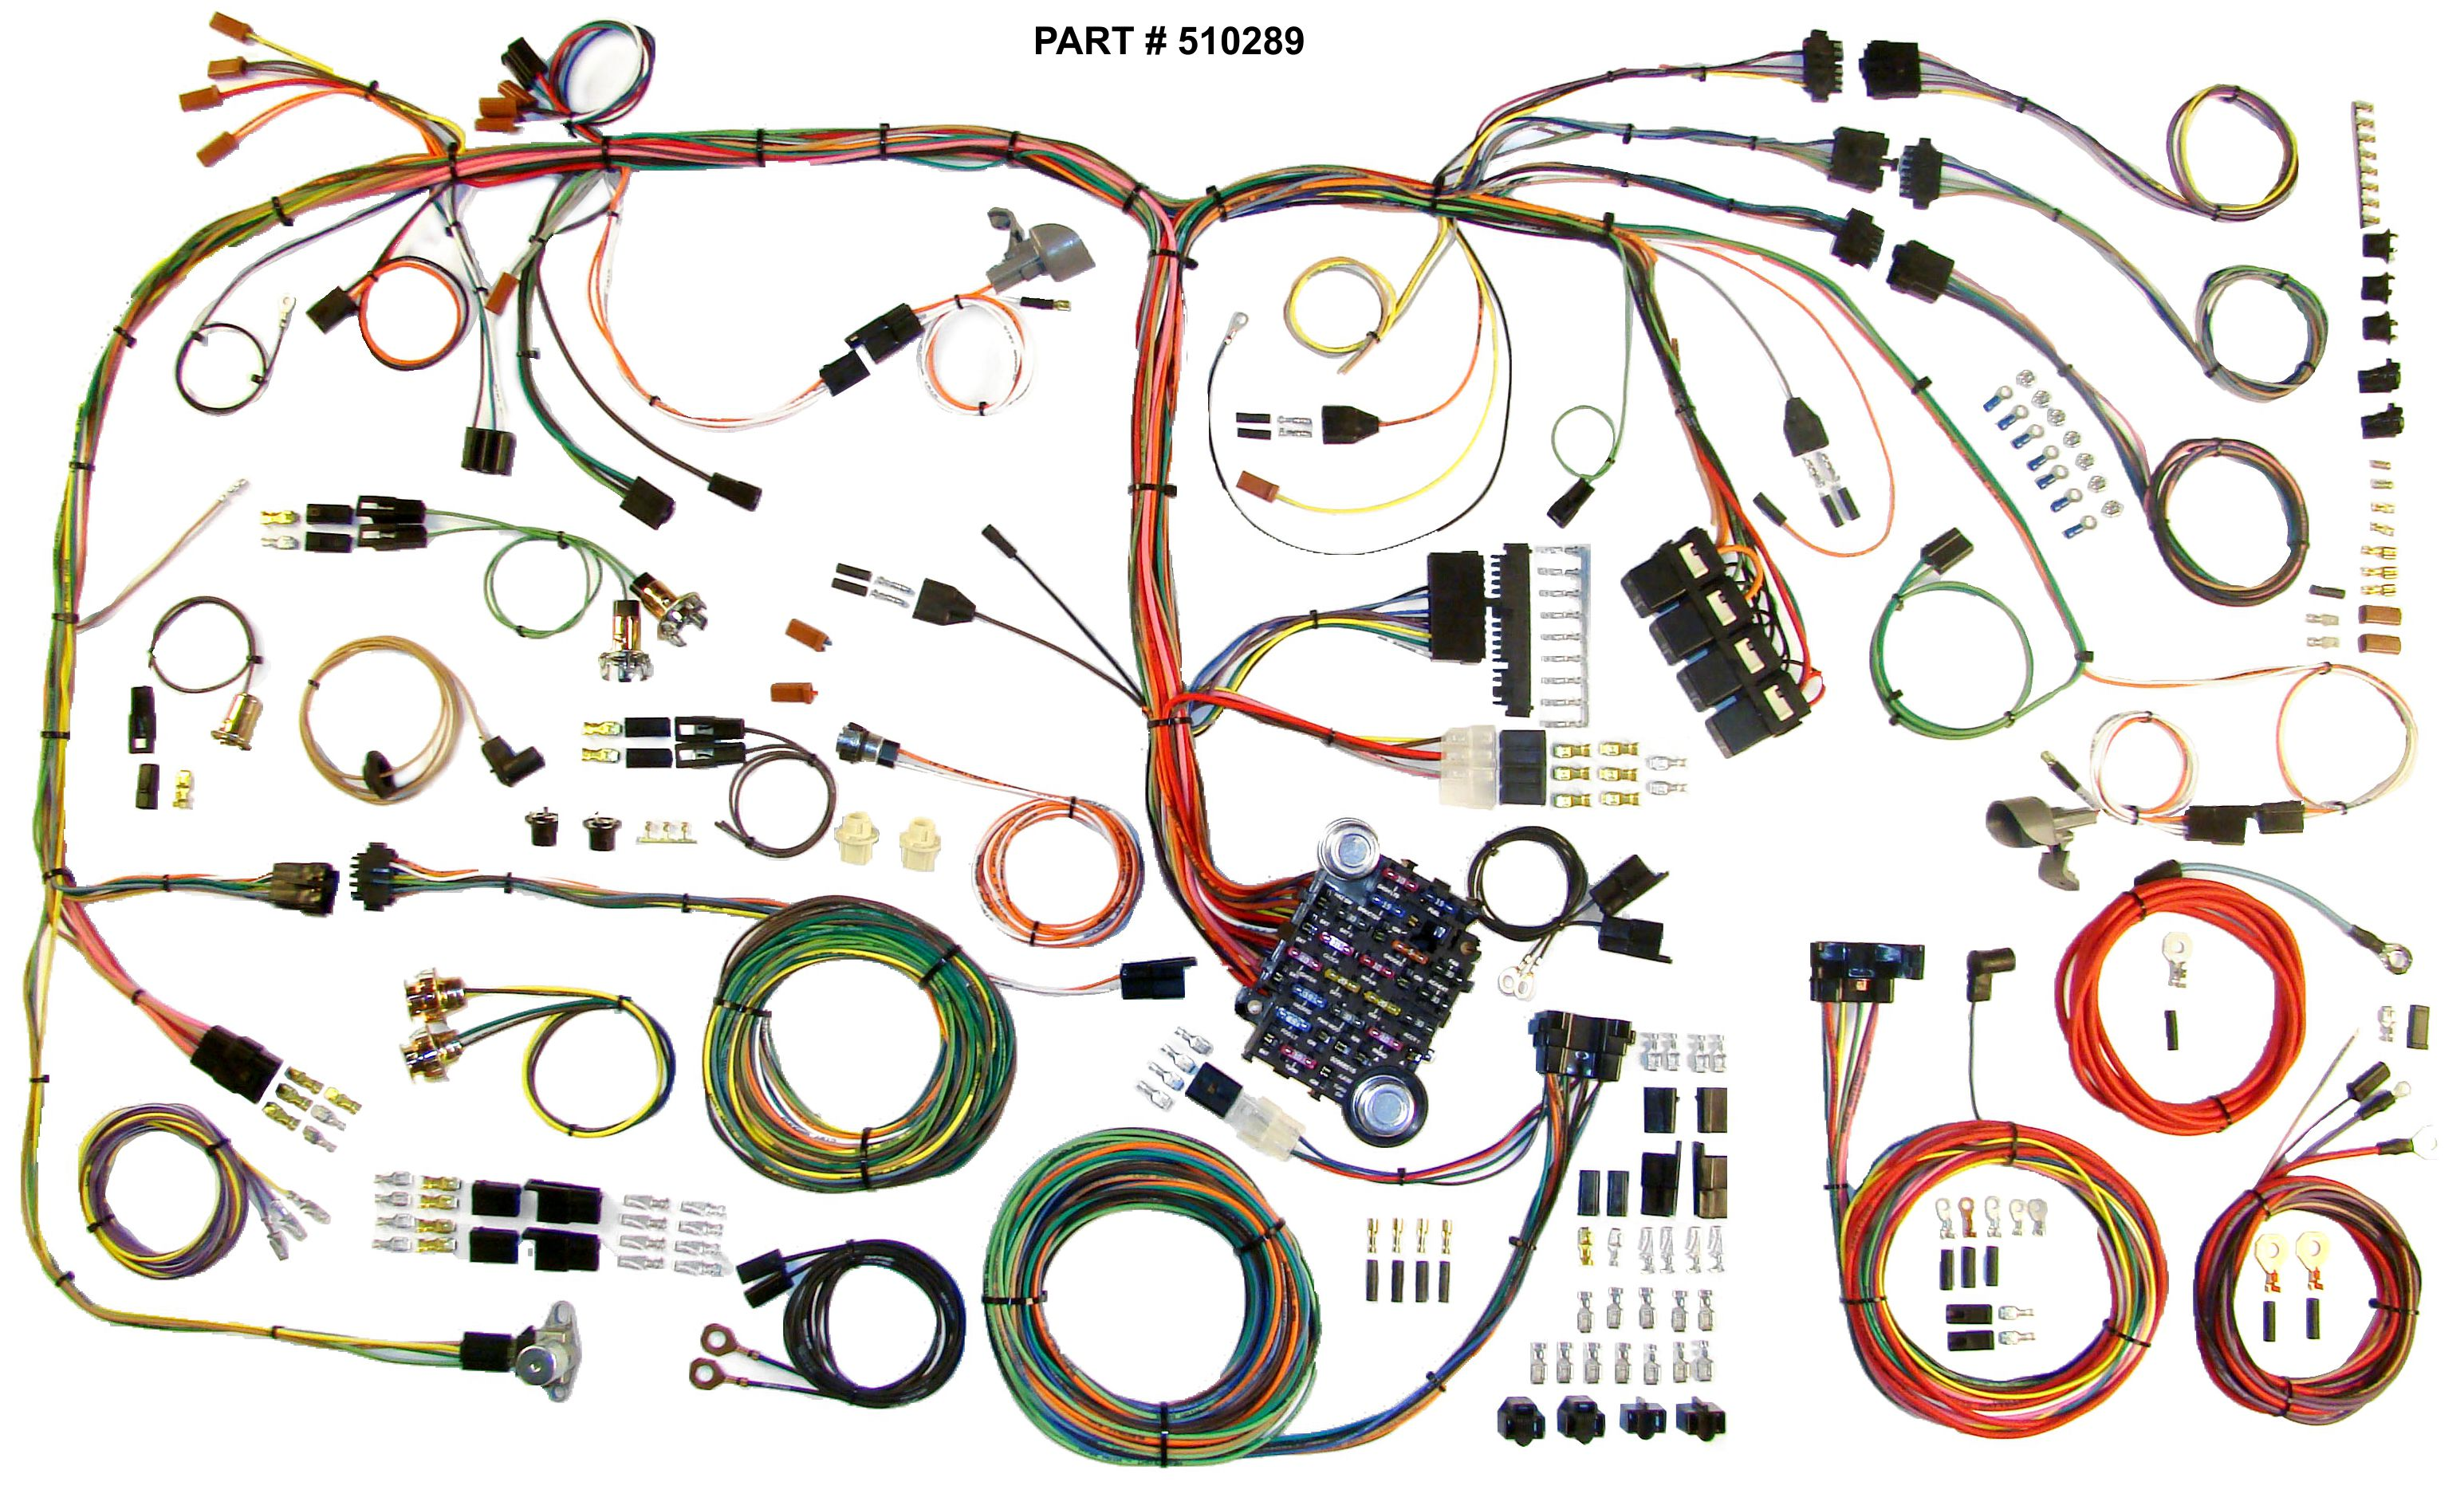 1965 Plymouth Barracuda Wiring Diagram Schematic Library 1970 Satellite 1974 Dodge Challenger Restomod System 1971 1972